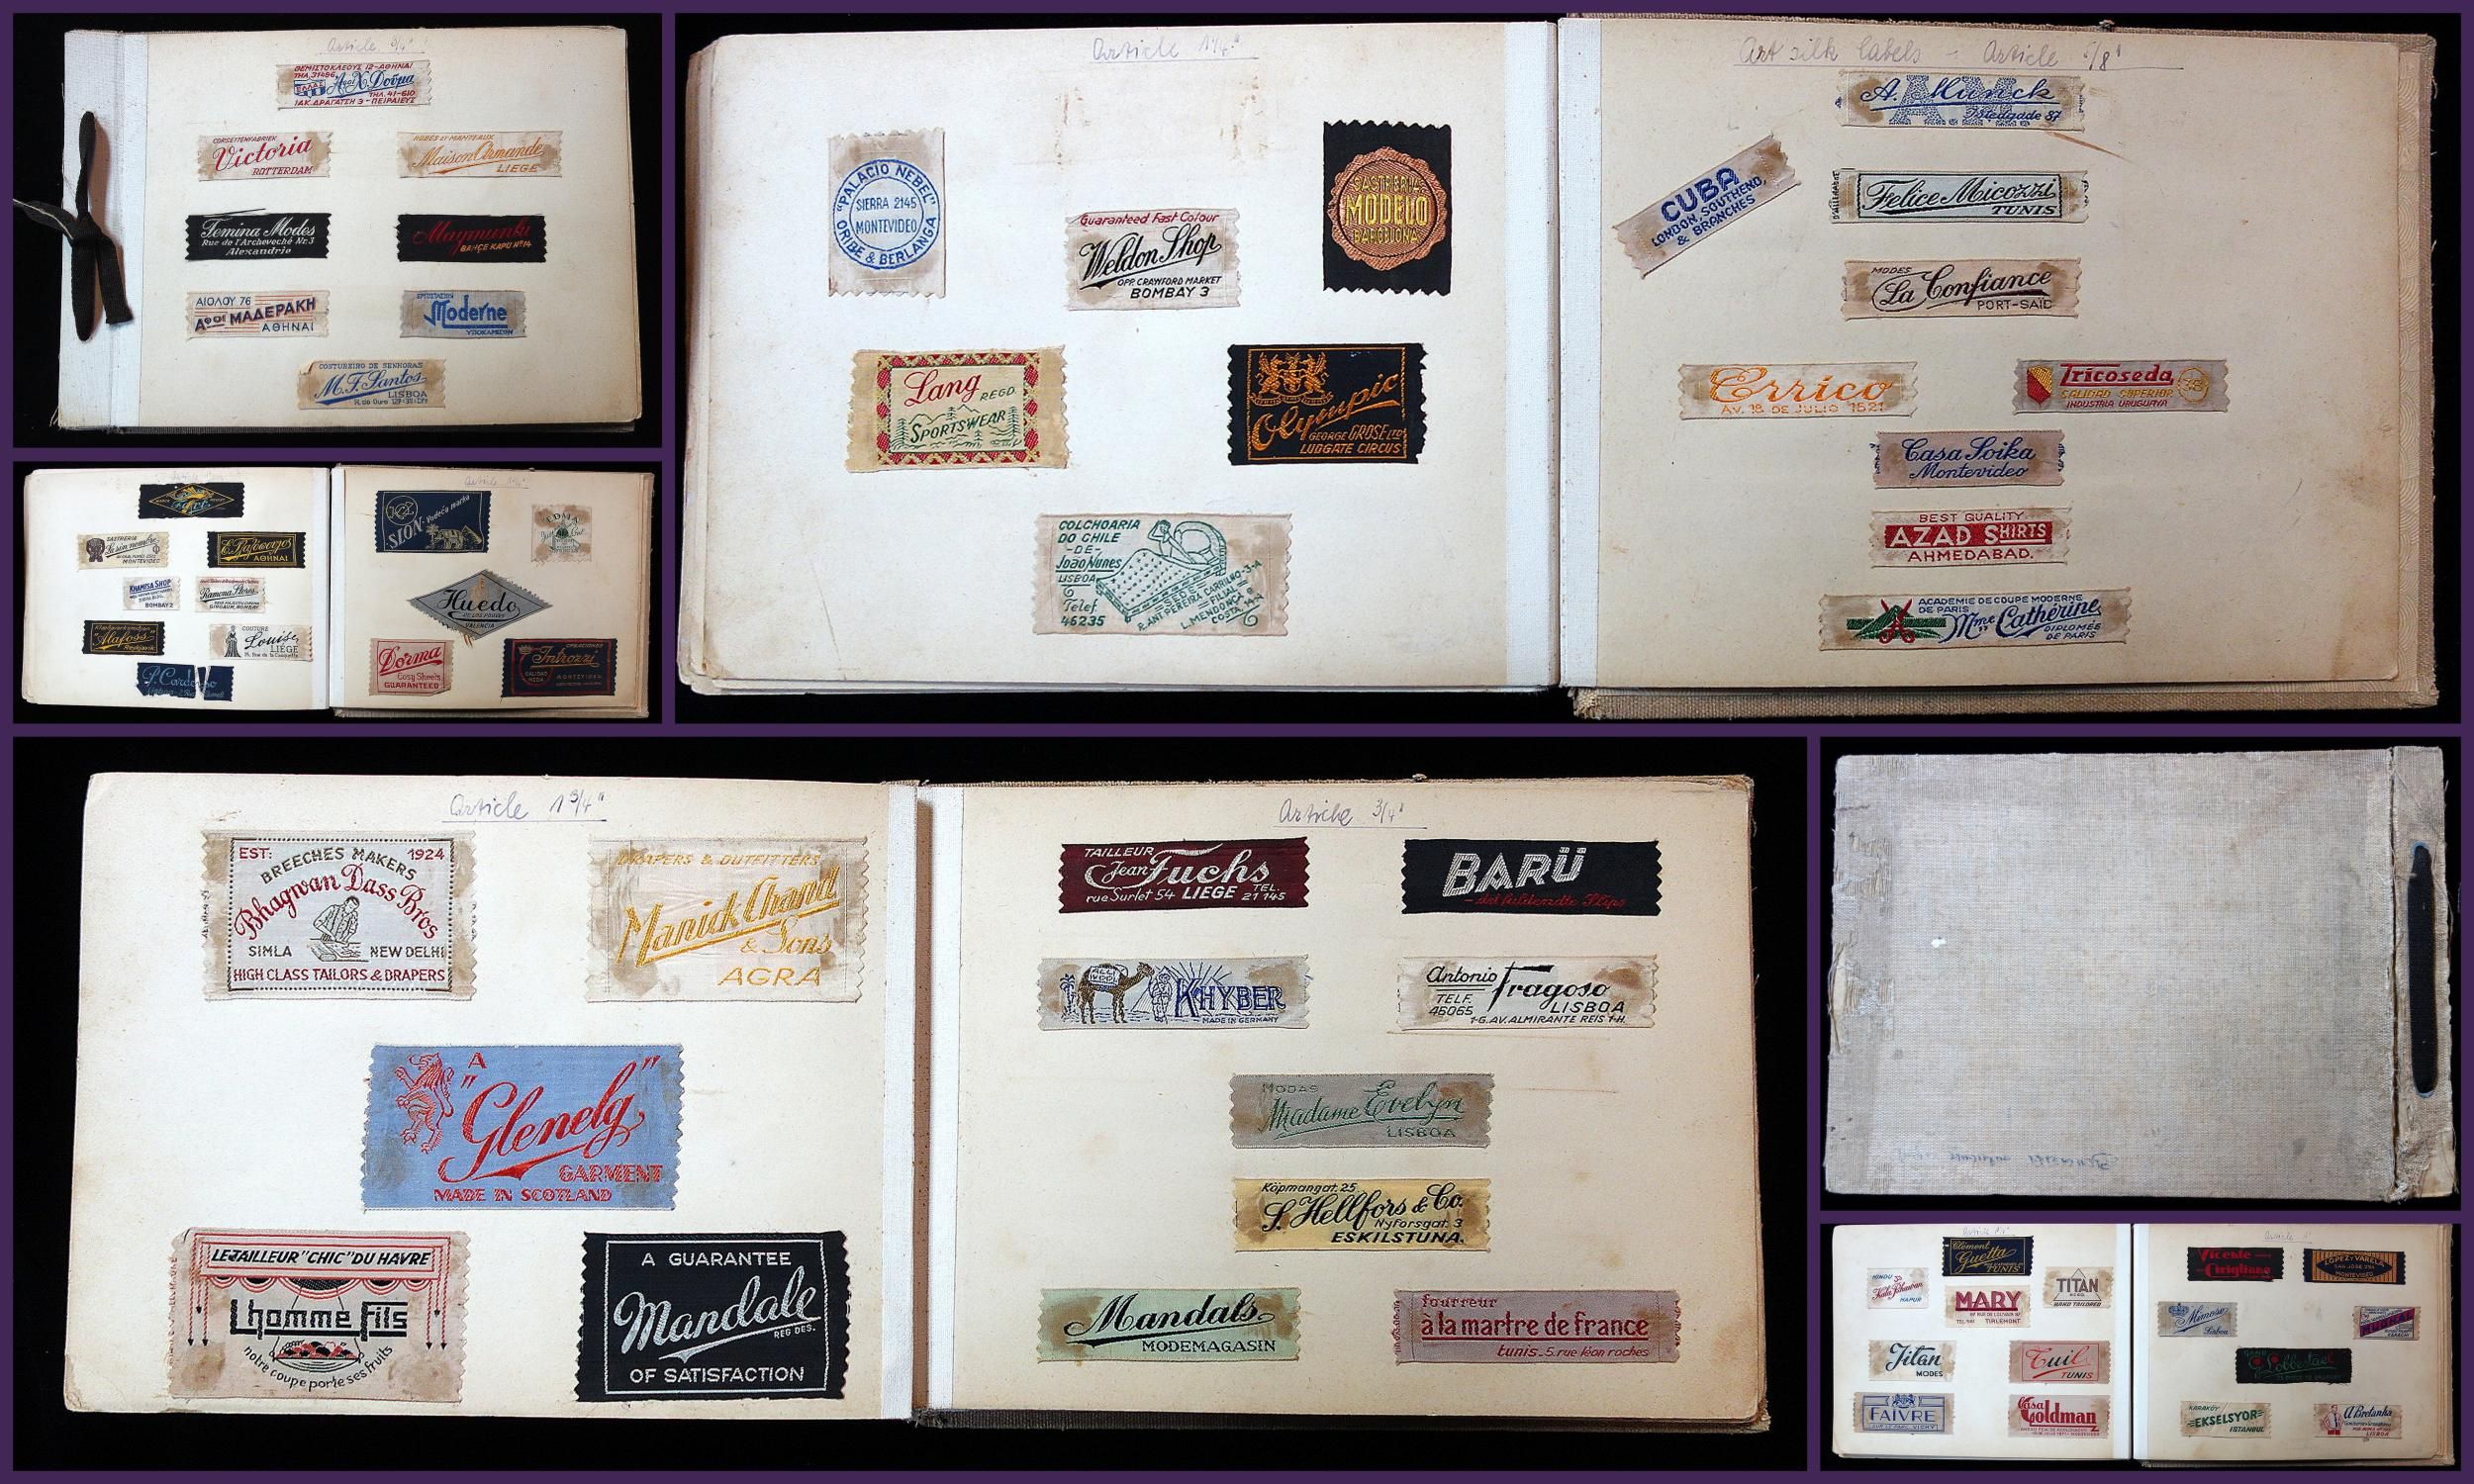 Salemen's Sample Book - International Selection of Silk Fabric Labels for Clothing 22 page sample book with 5-10 different woven silk examples of silk and cotton fabric labels for garments. Printed in a variety of styles, shapes, lan